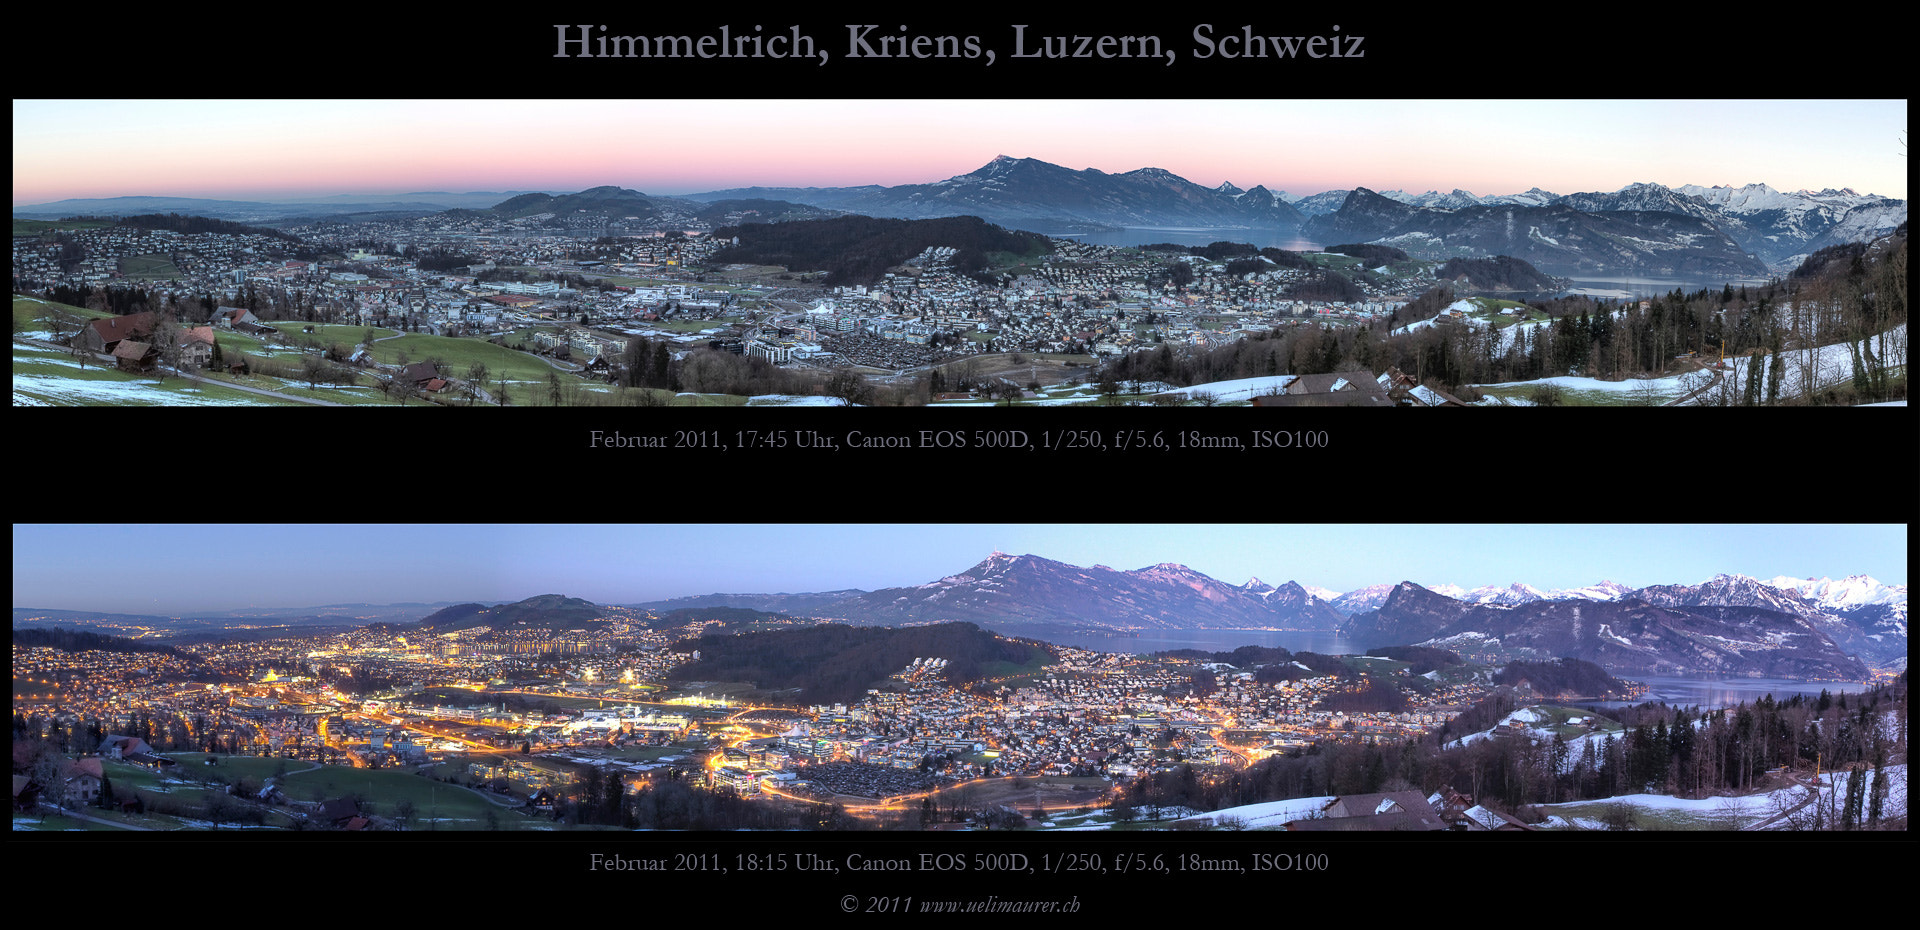 Photograph Himmelrich, Luzern by Ueli Maurer on 500px